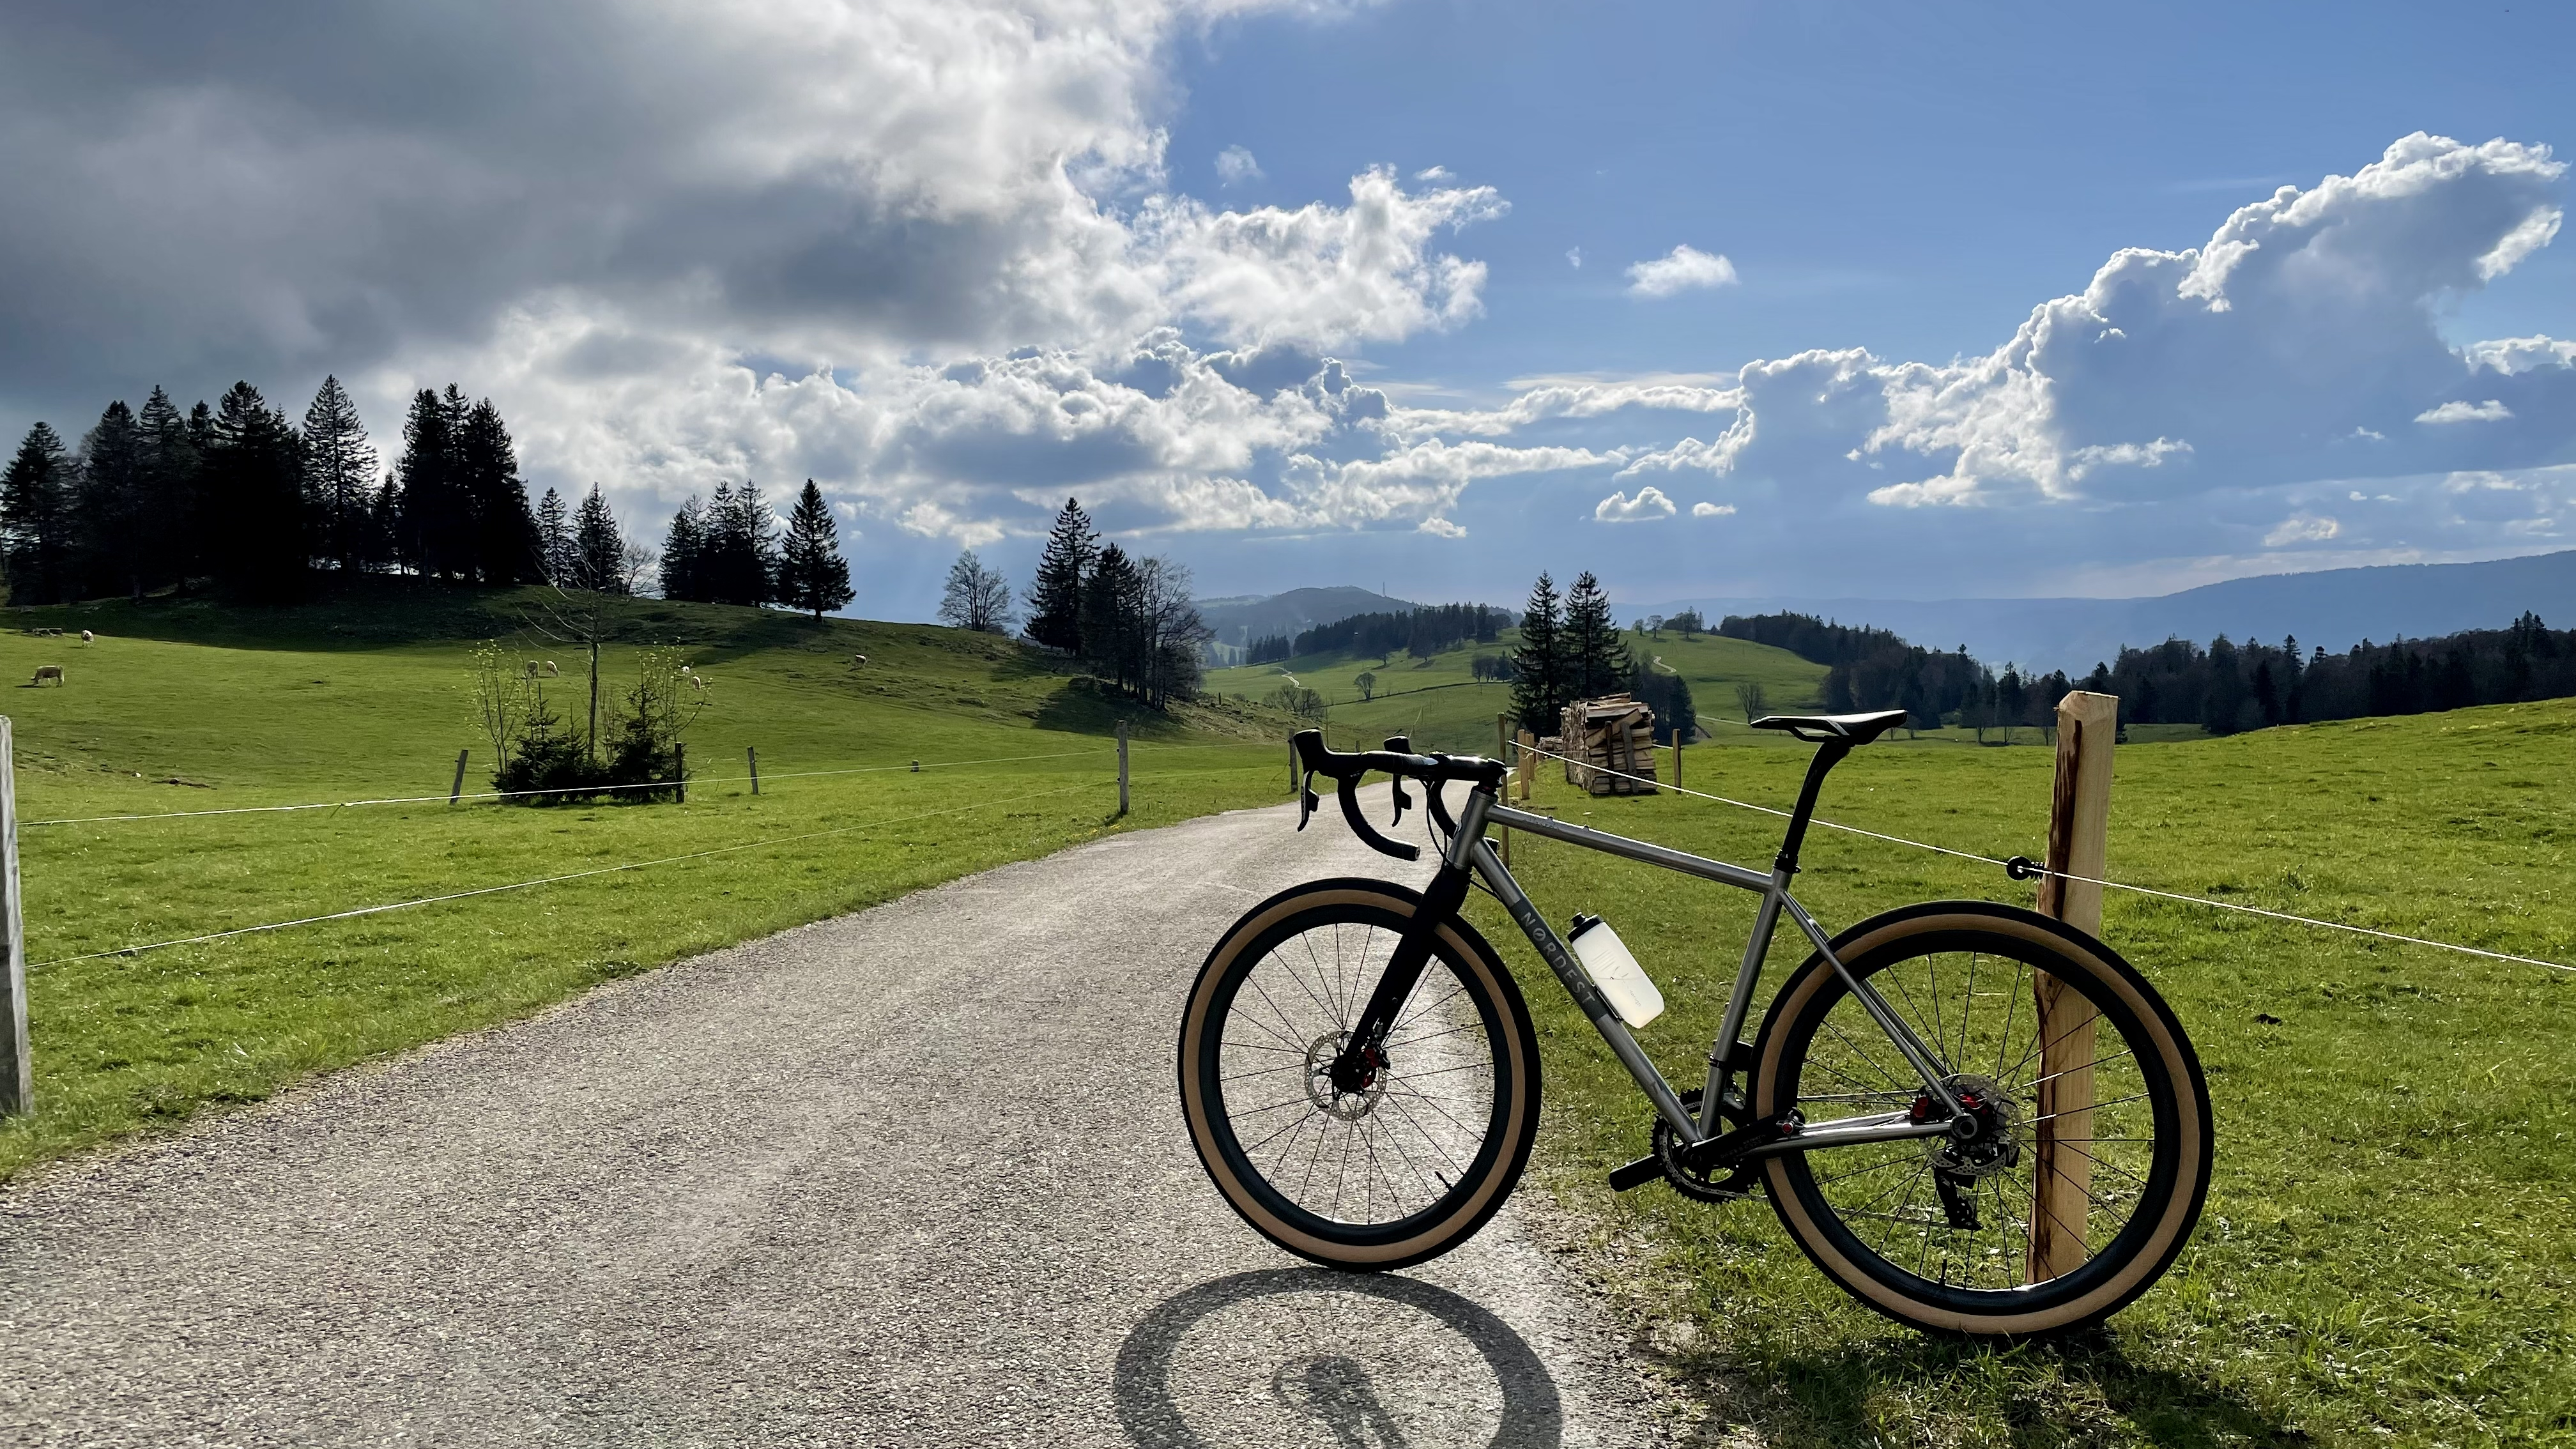 Evening ride to the Grenchenberg on May 12, 2021.